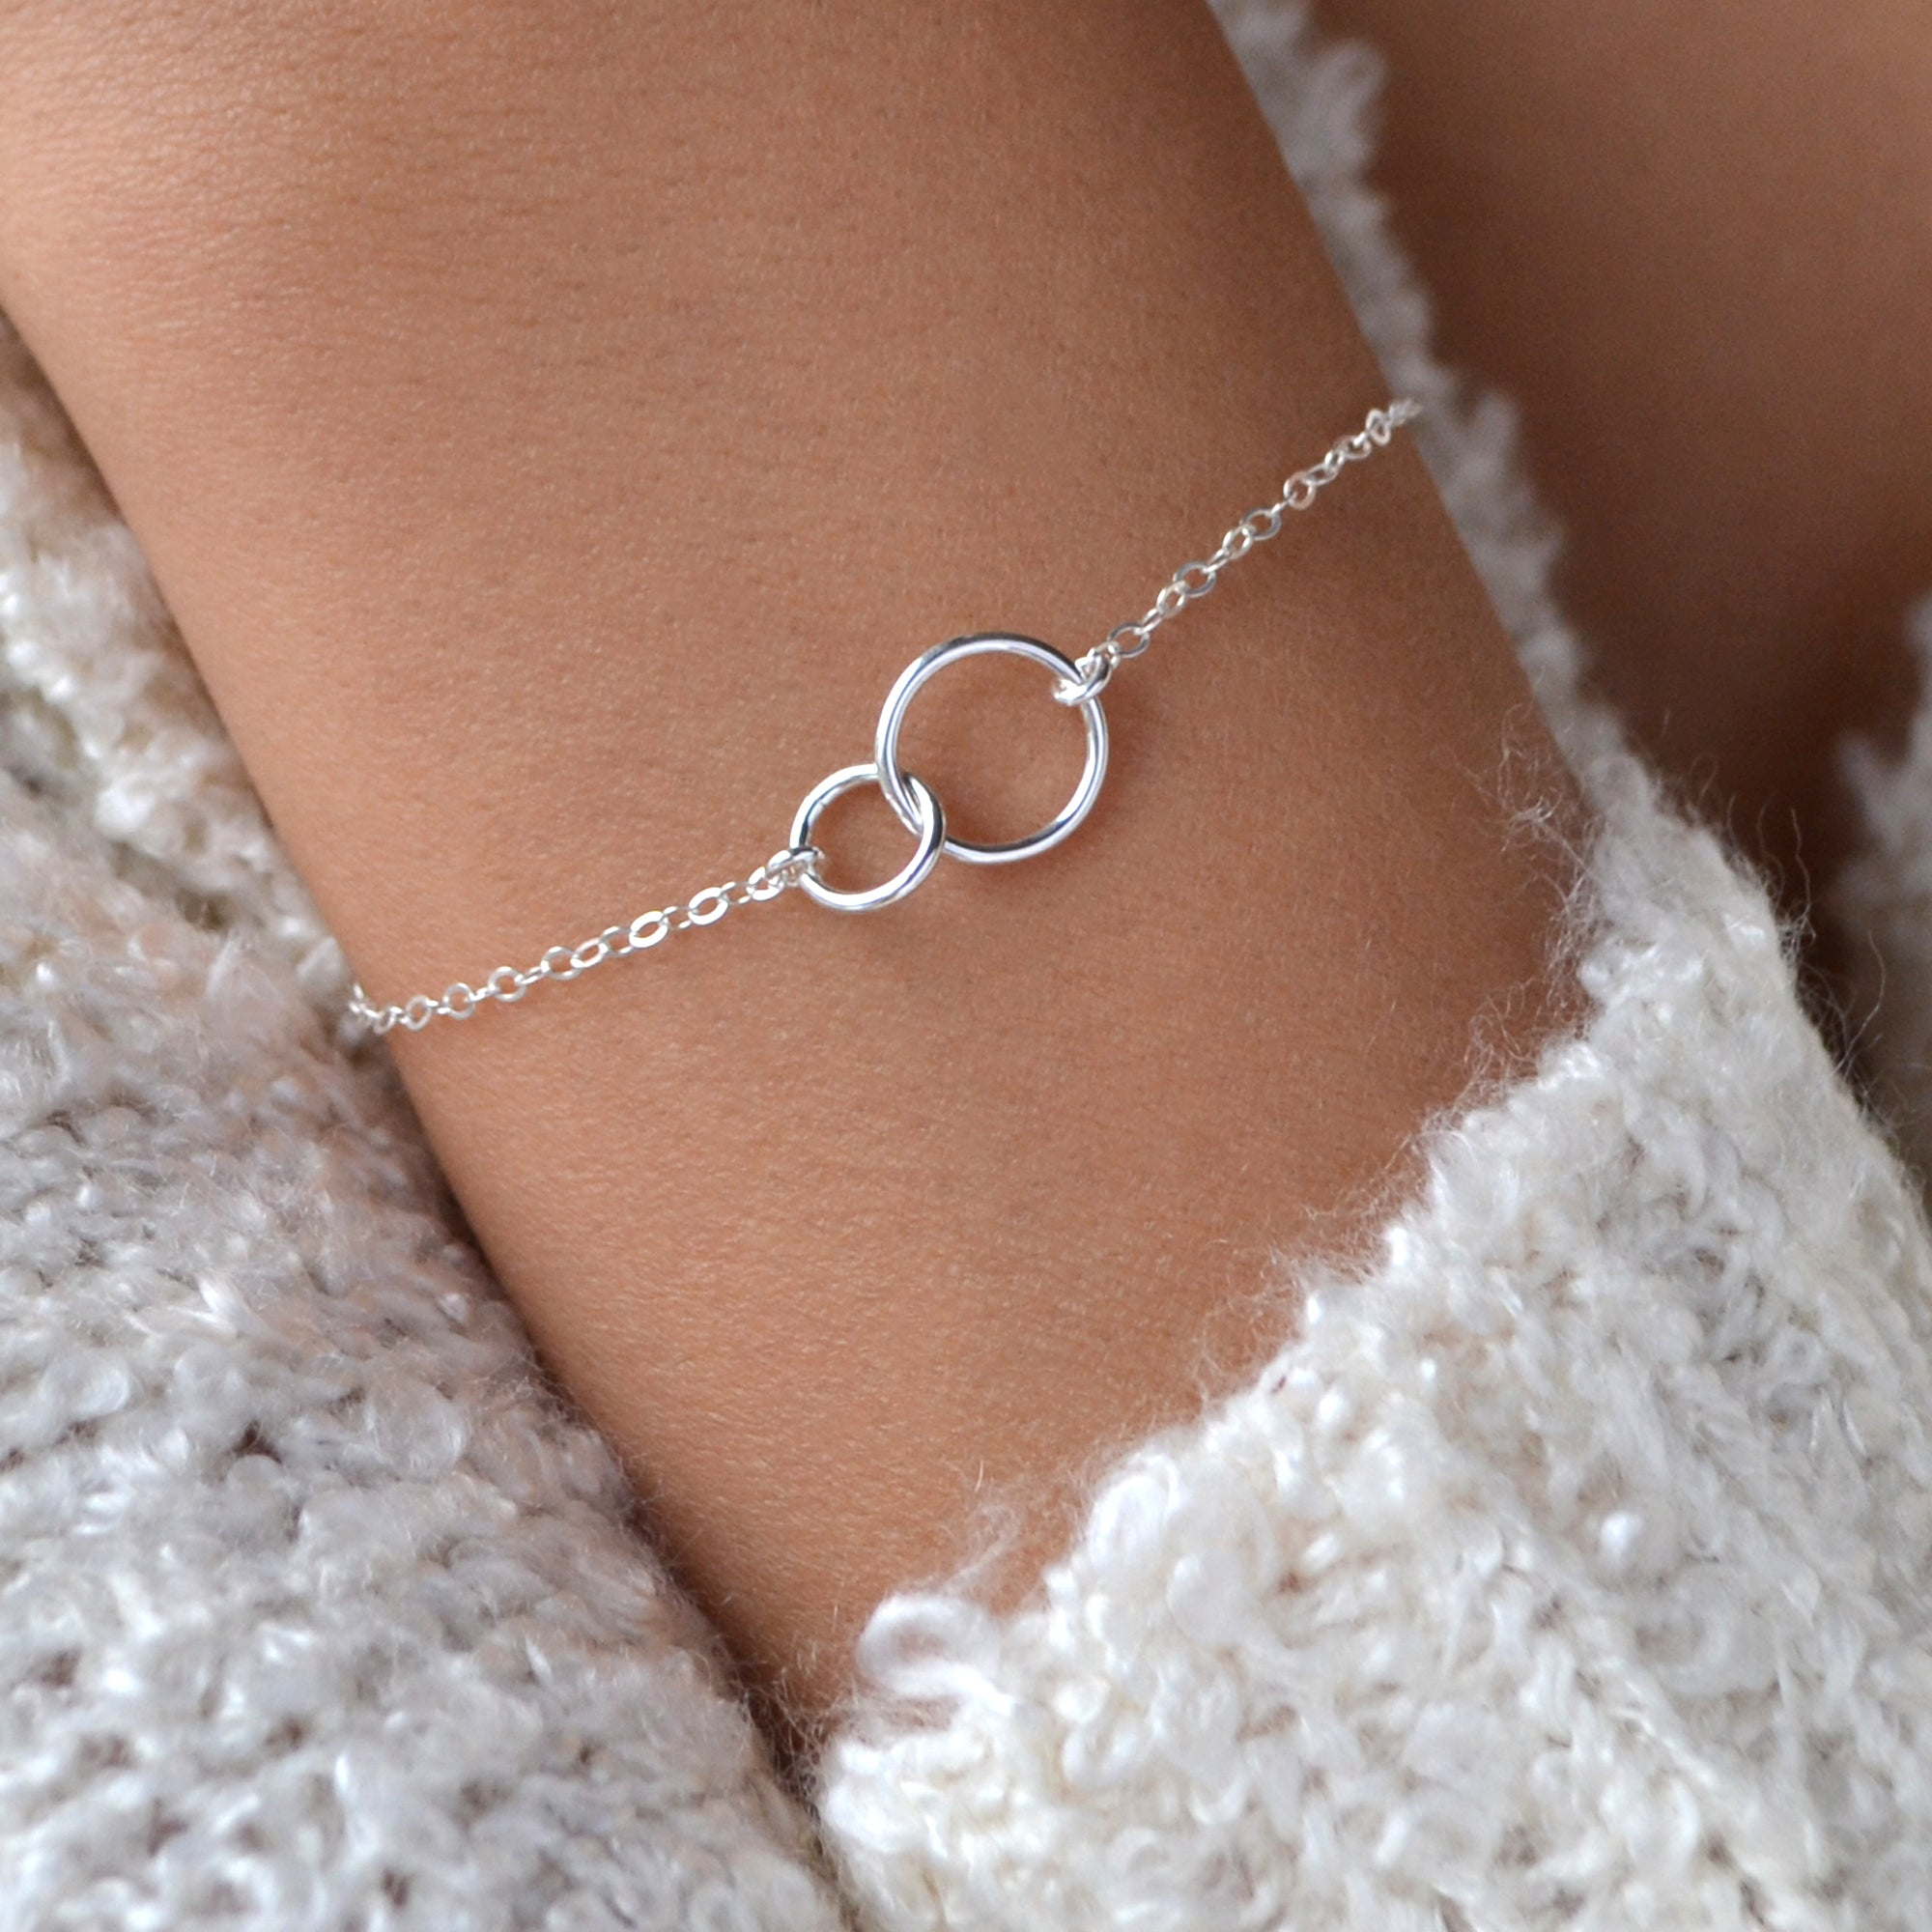 PAIGE Two Linked Circles Eternity Bracelet, Karma Charm Bracelet (Sterling Silver, Gold, Rose Gold)